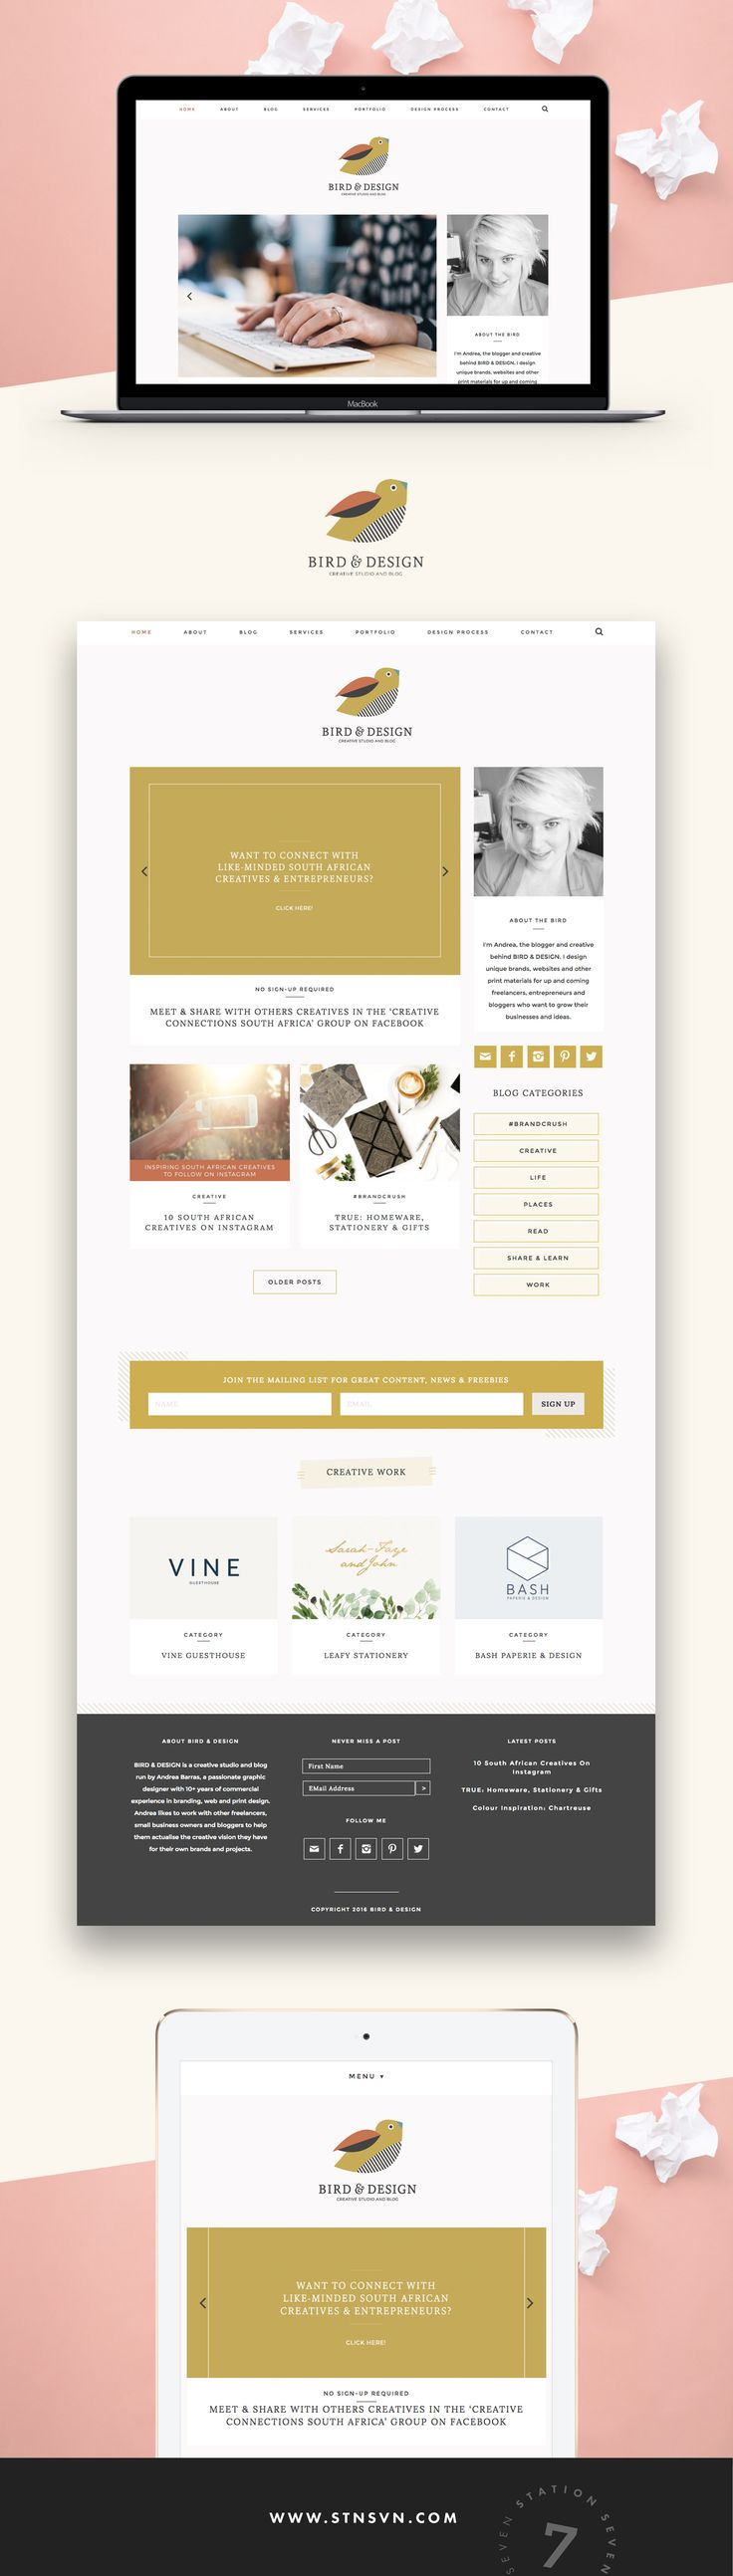 Bird & Design Creative Studio and Blog running on Station Seven's Kindred WordPress theme! She created a minimal, user friendly site.